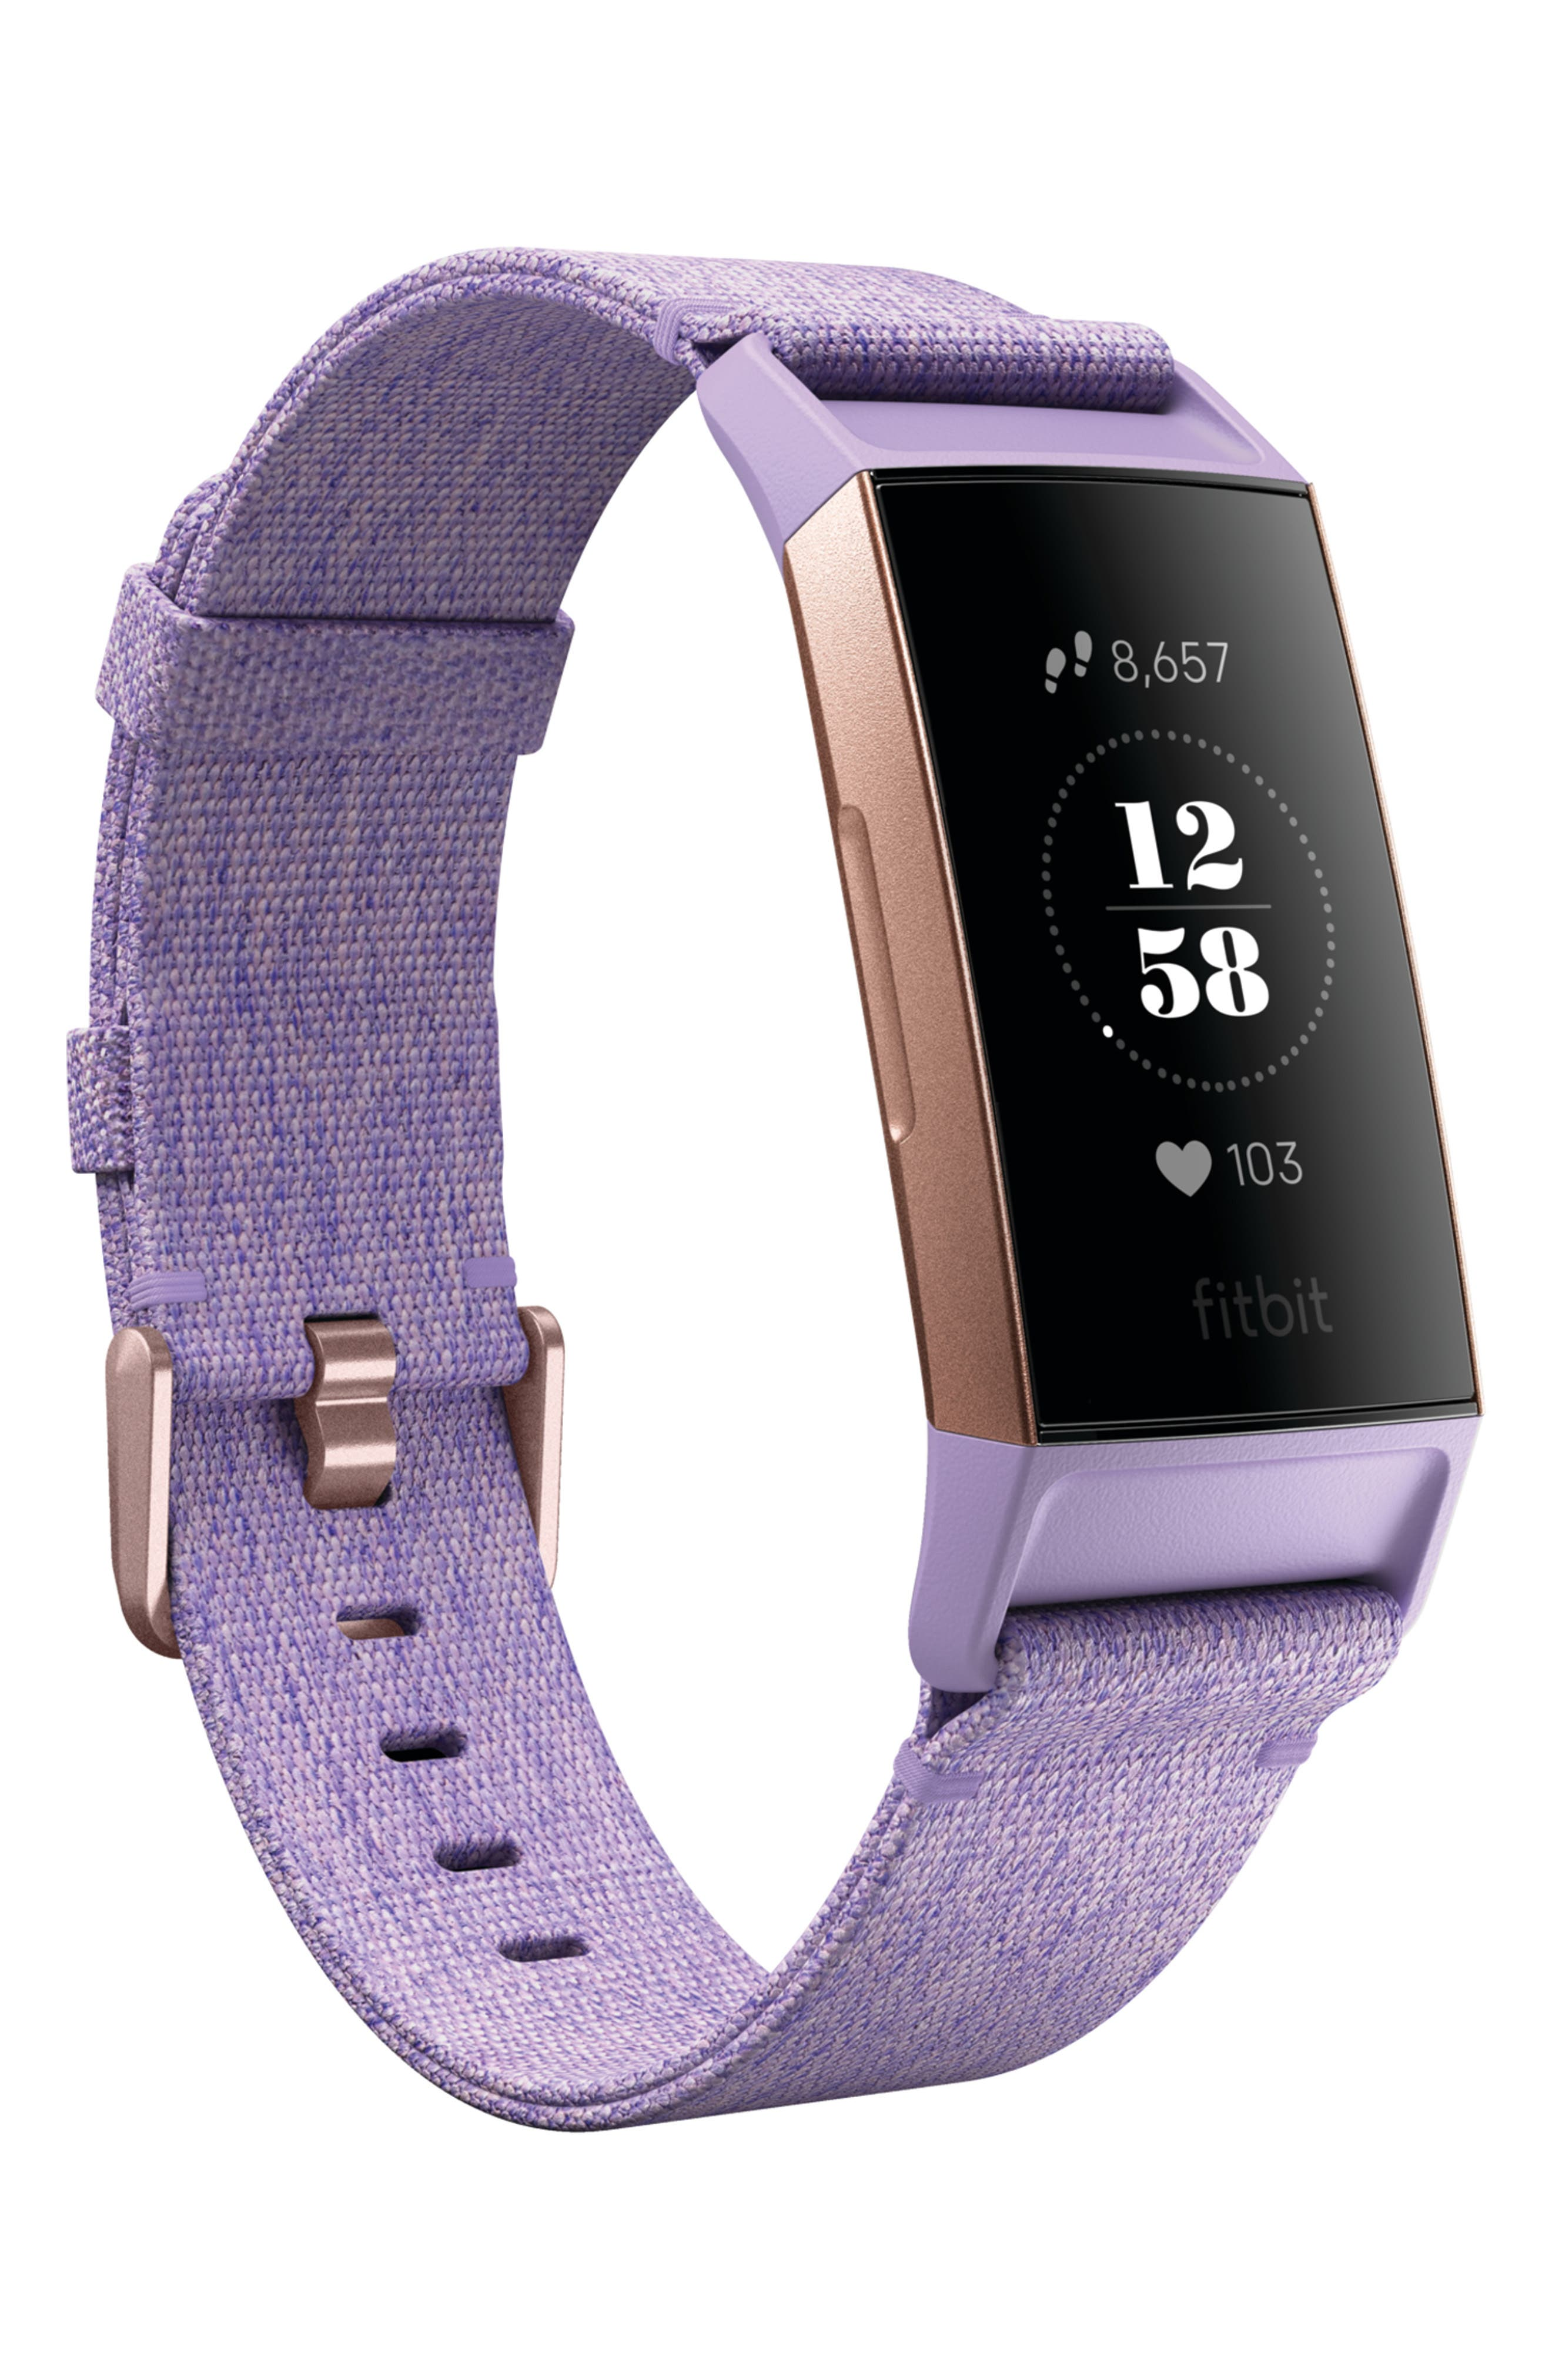 FITBIT, Charge 3 Special Edition Wireless Activity & Heart Rate Tracker, Alternate thumbnail 4, color, LAVENDER